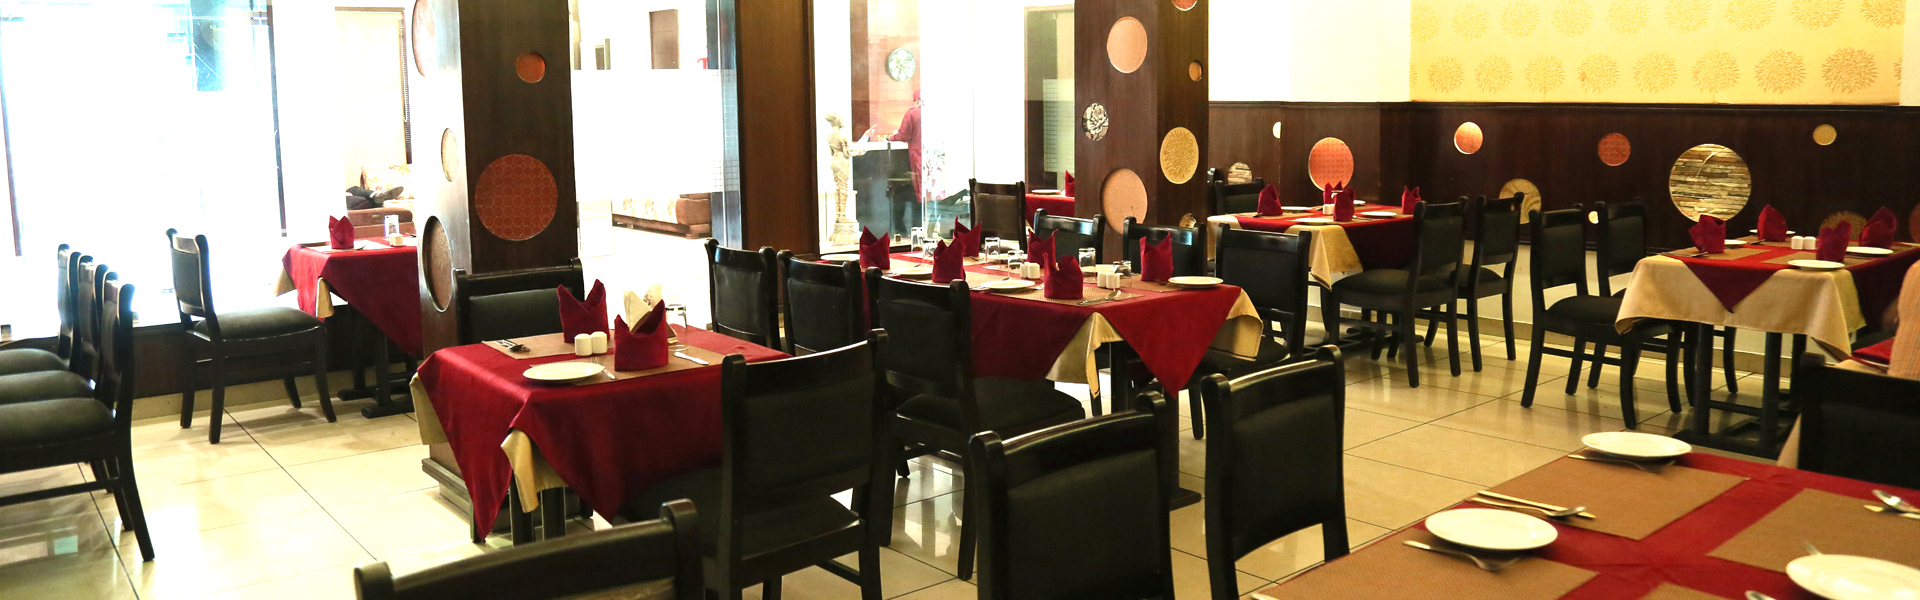 Best Family Restaurant in Dehradun